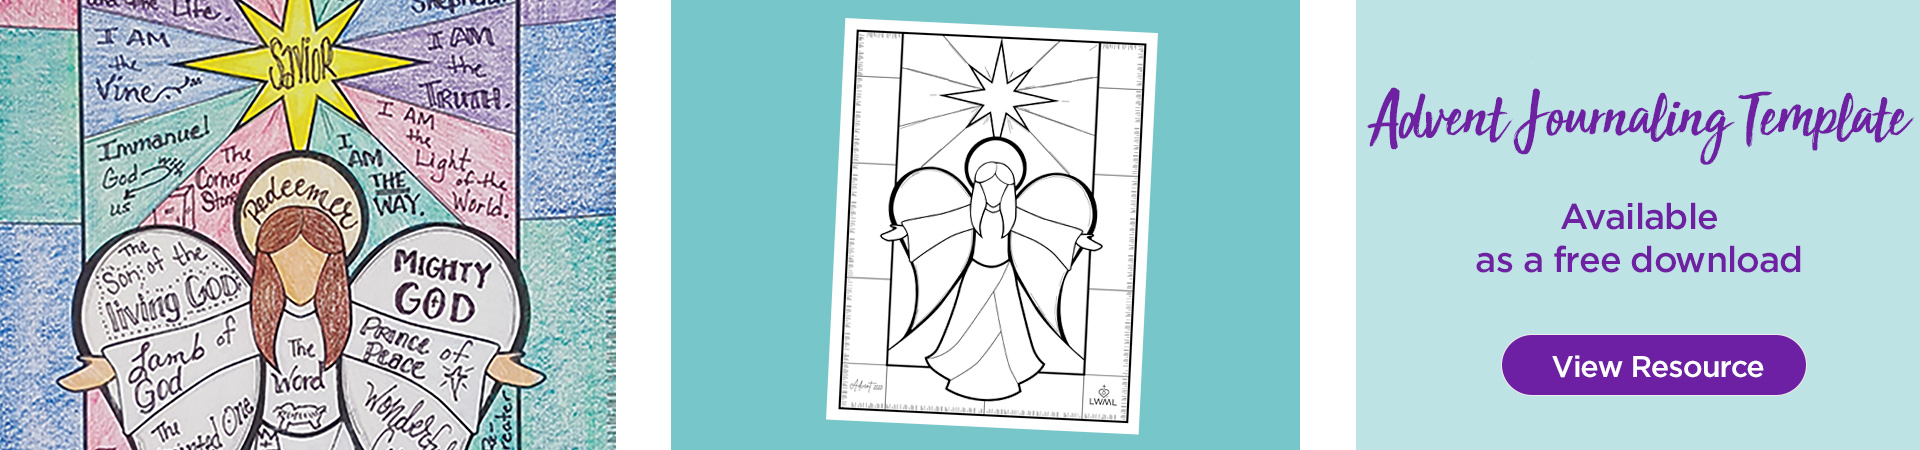 Advent Journaling Template. View Resource.